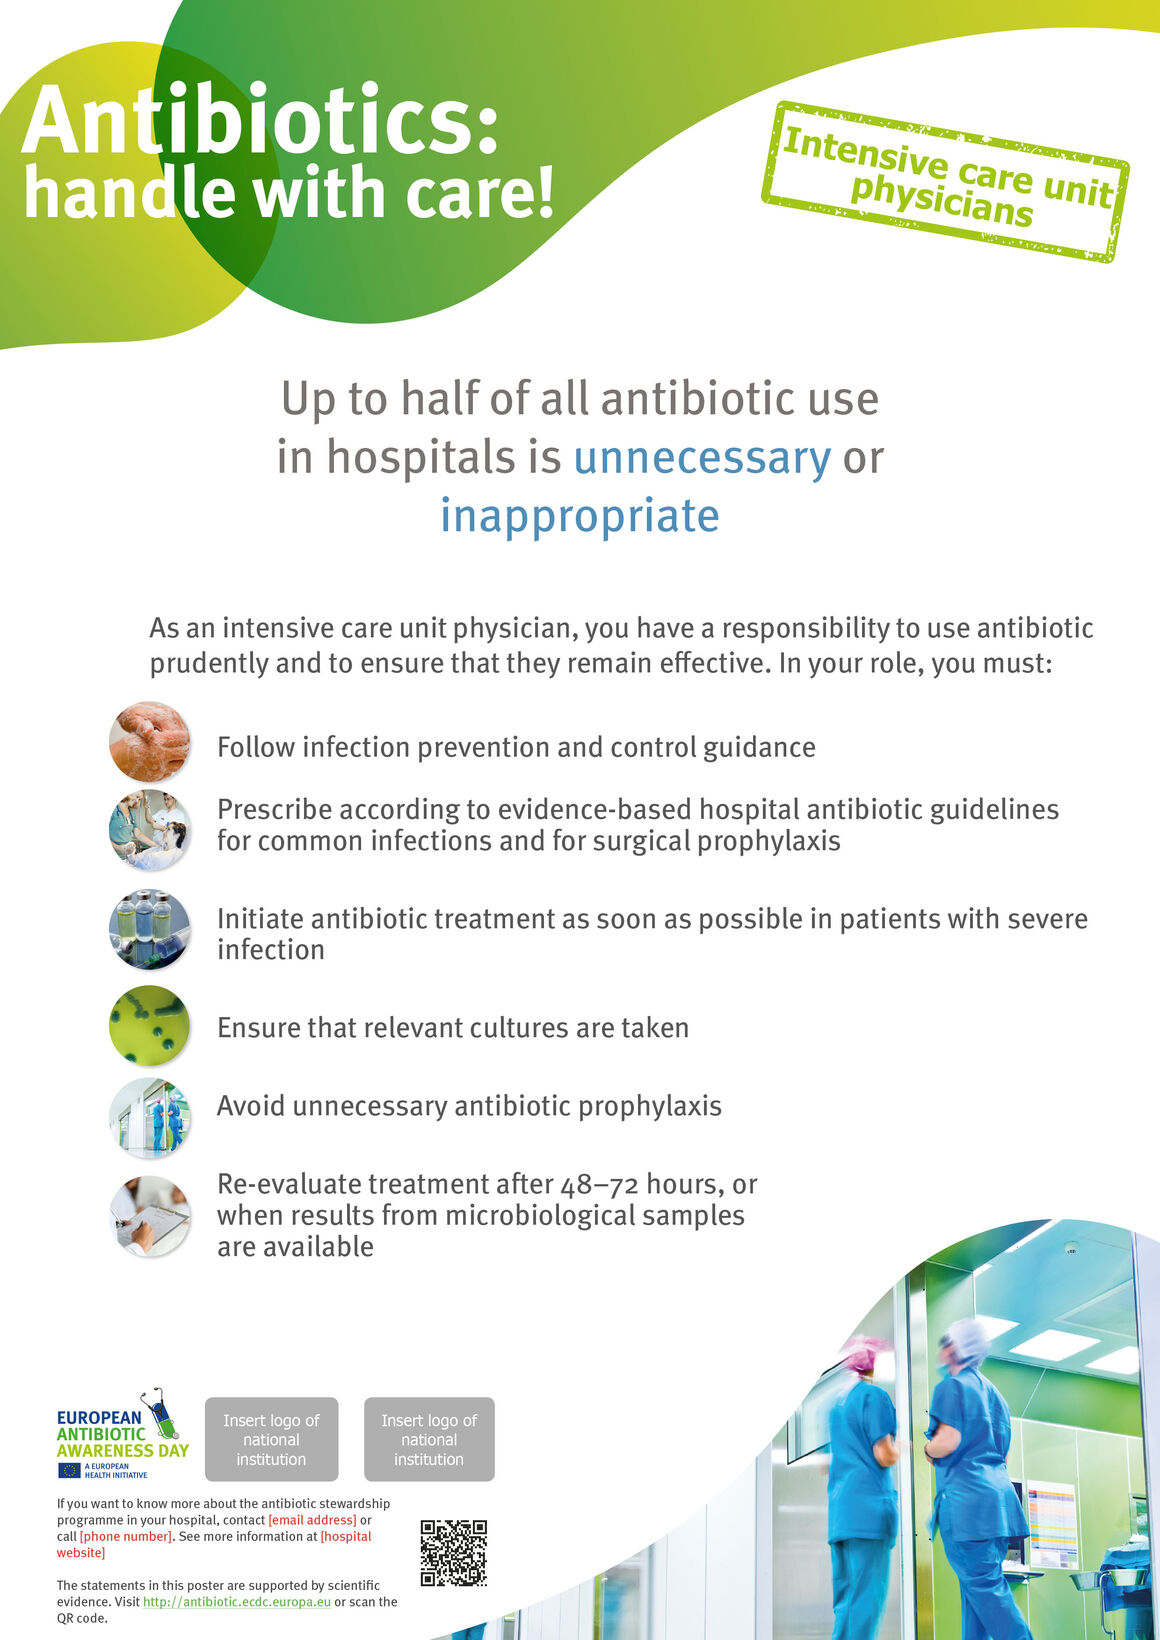 Poster for intensive care unit physicians: Things to do to keep antibiotics working.